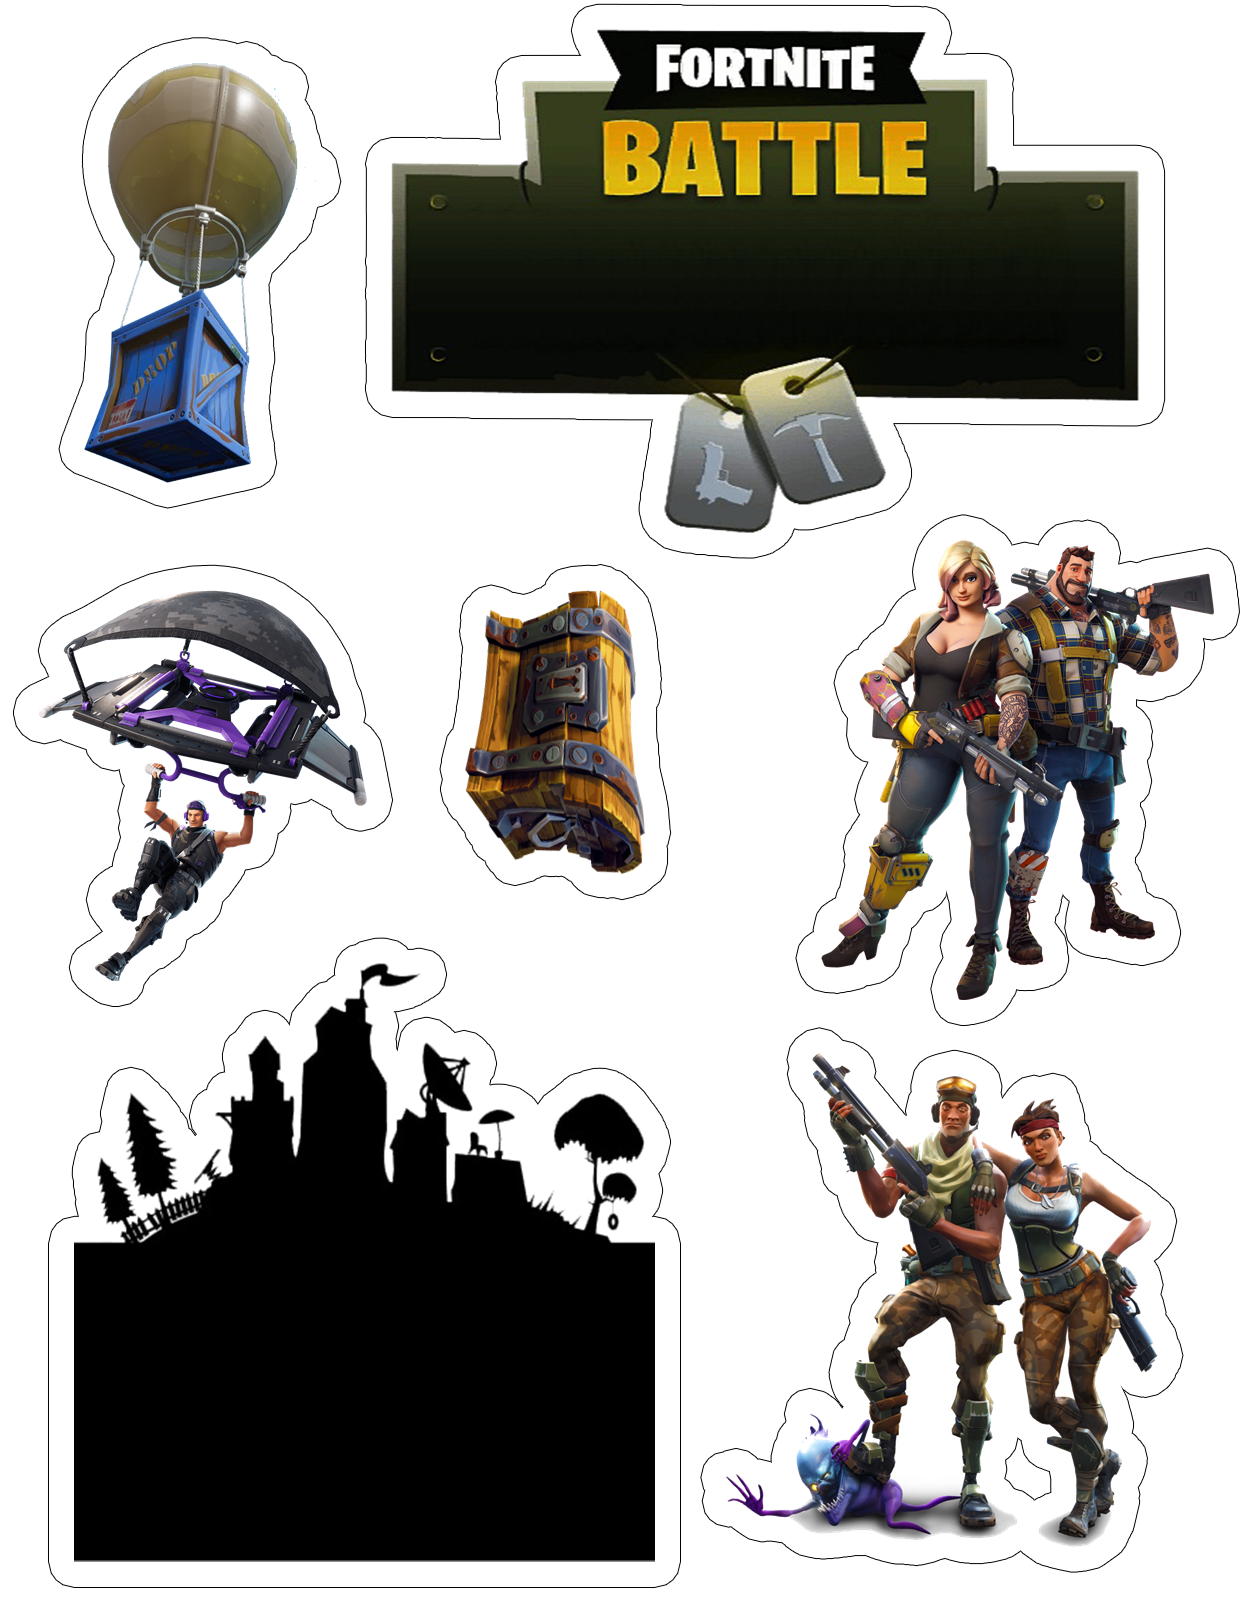 graphic relating to Fortnite Printable known as Fortnite Absolutely free Printable Cake Toppers. - Oh My Fiesta! for Geeks